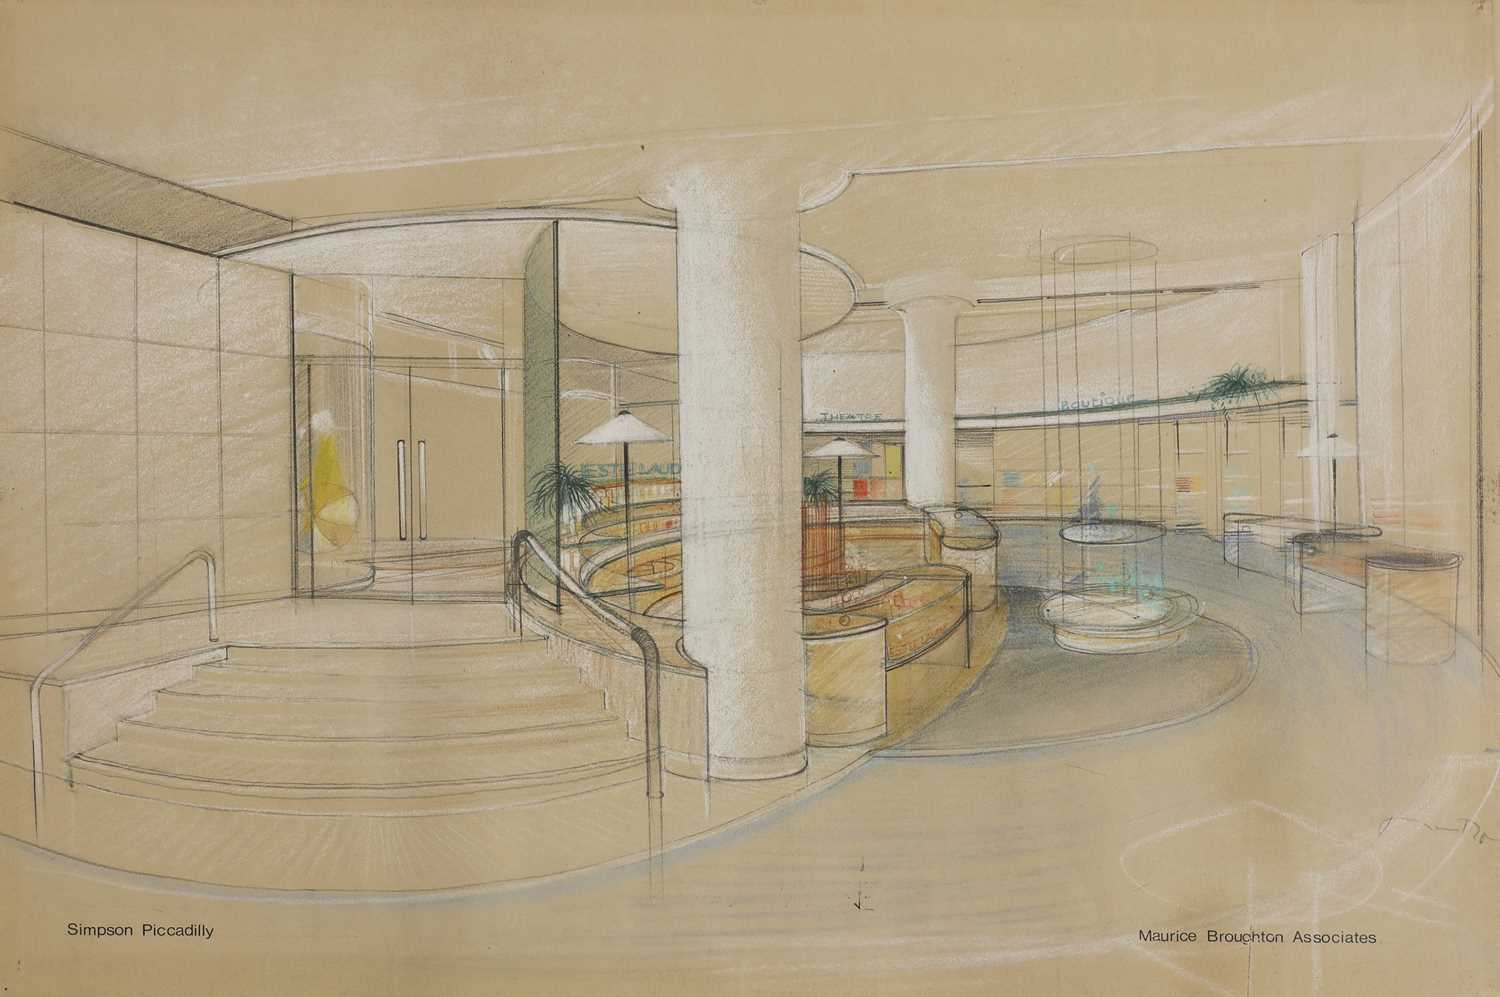 Maurice Broughton Associates, - Image 4 of 7